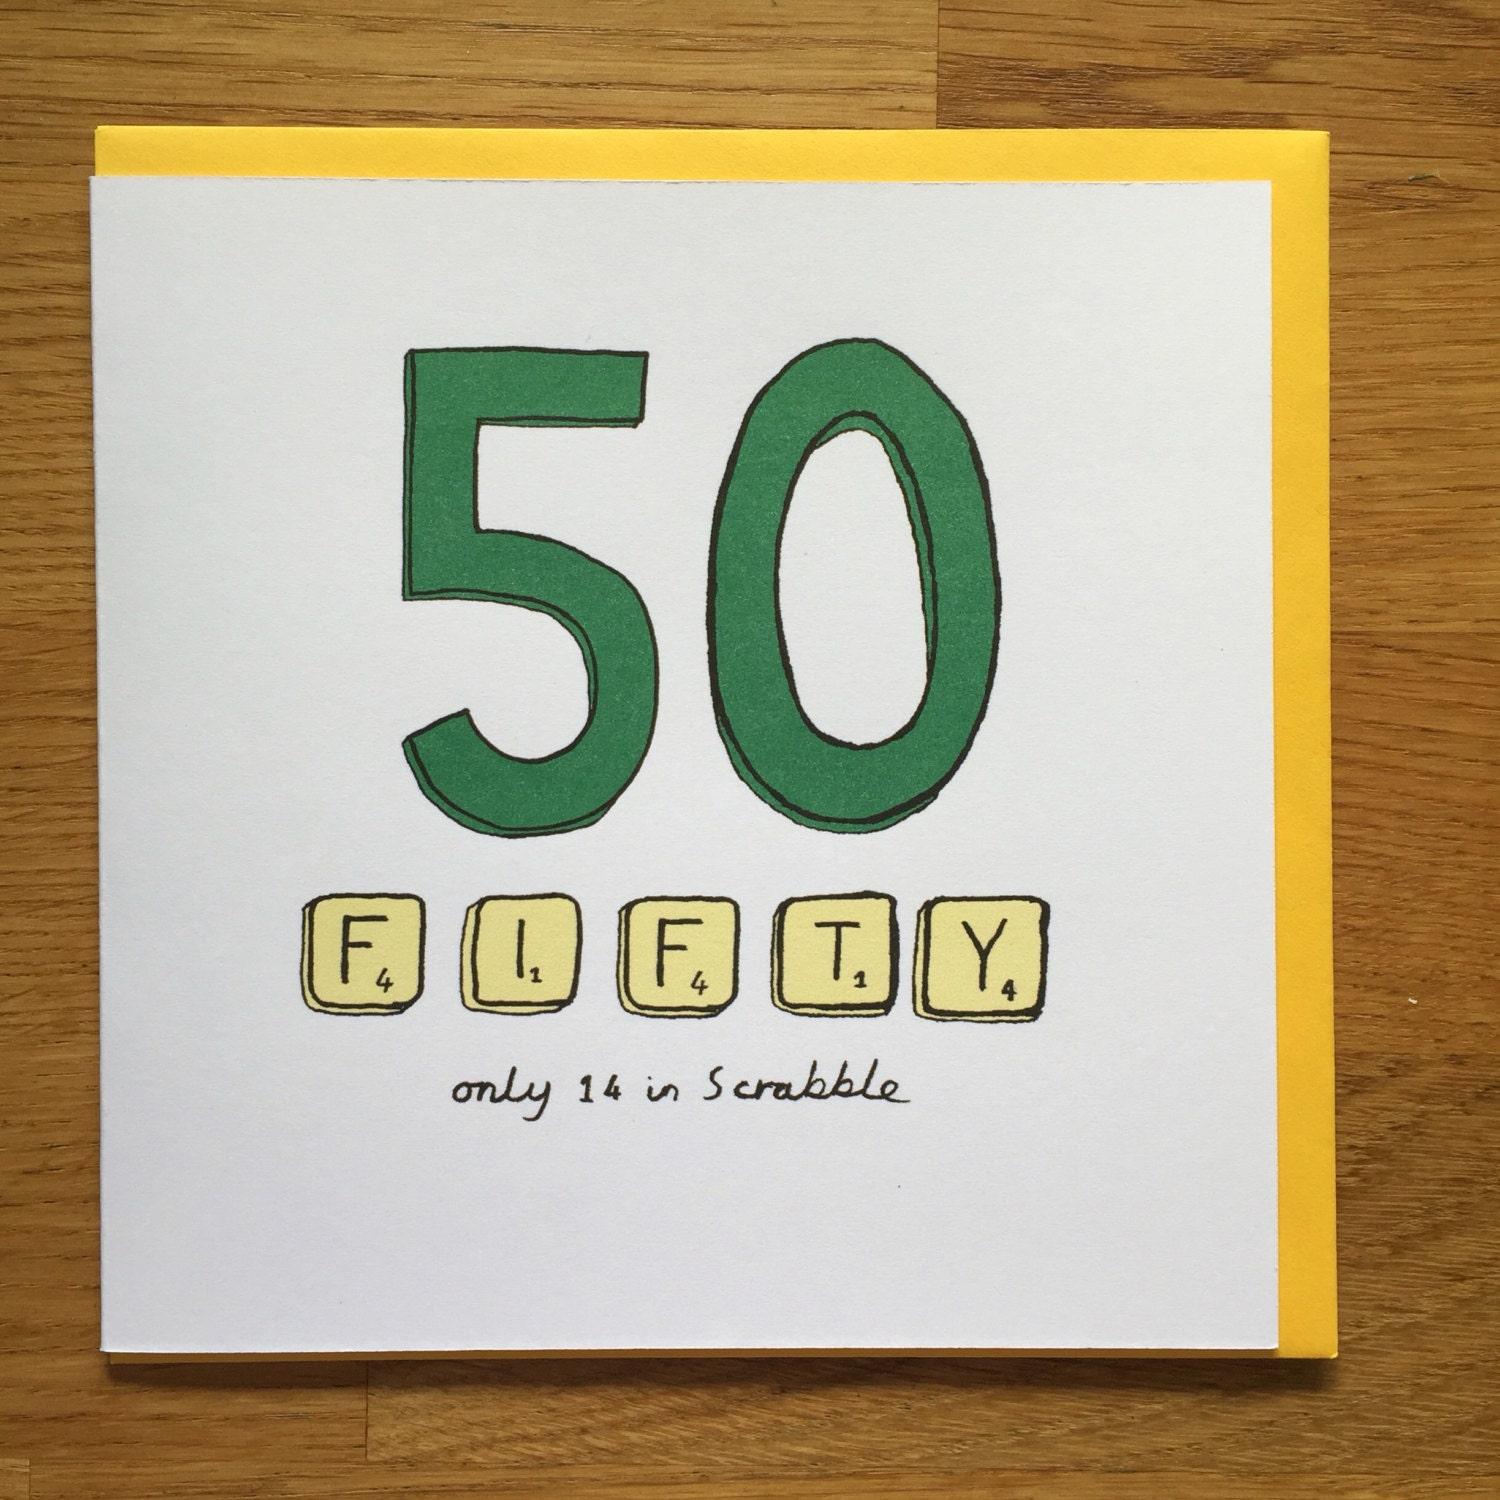 Fiftieth birthday card 50 50th scrabble happy birthday card – Cards 50th Birthday